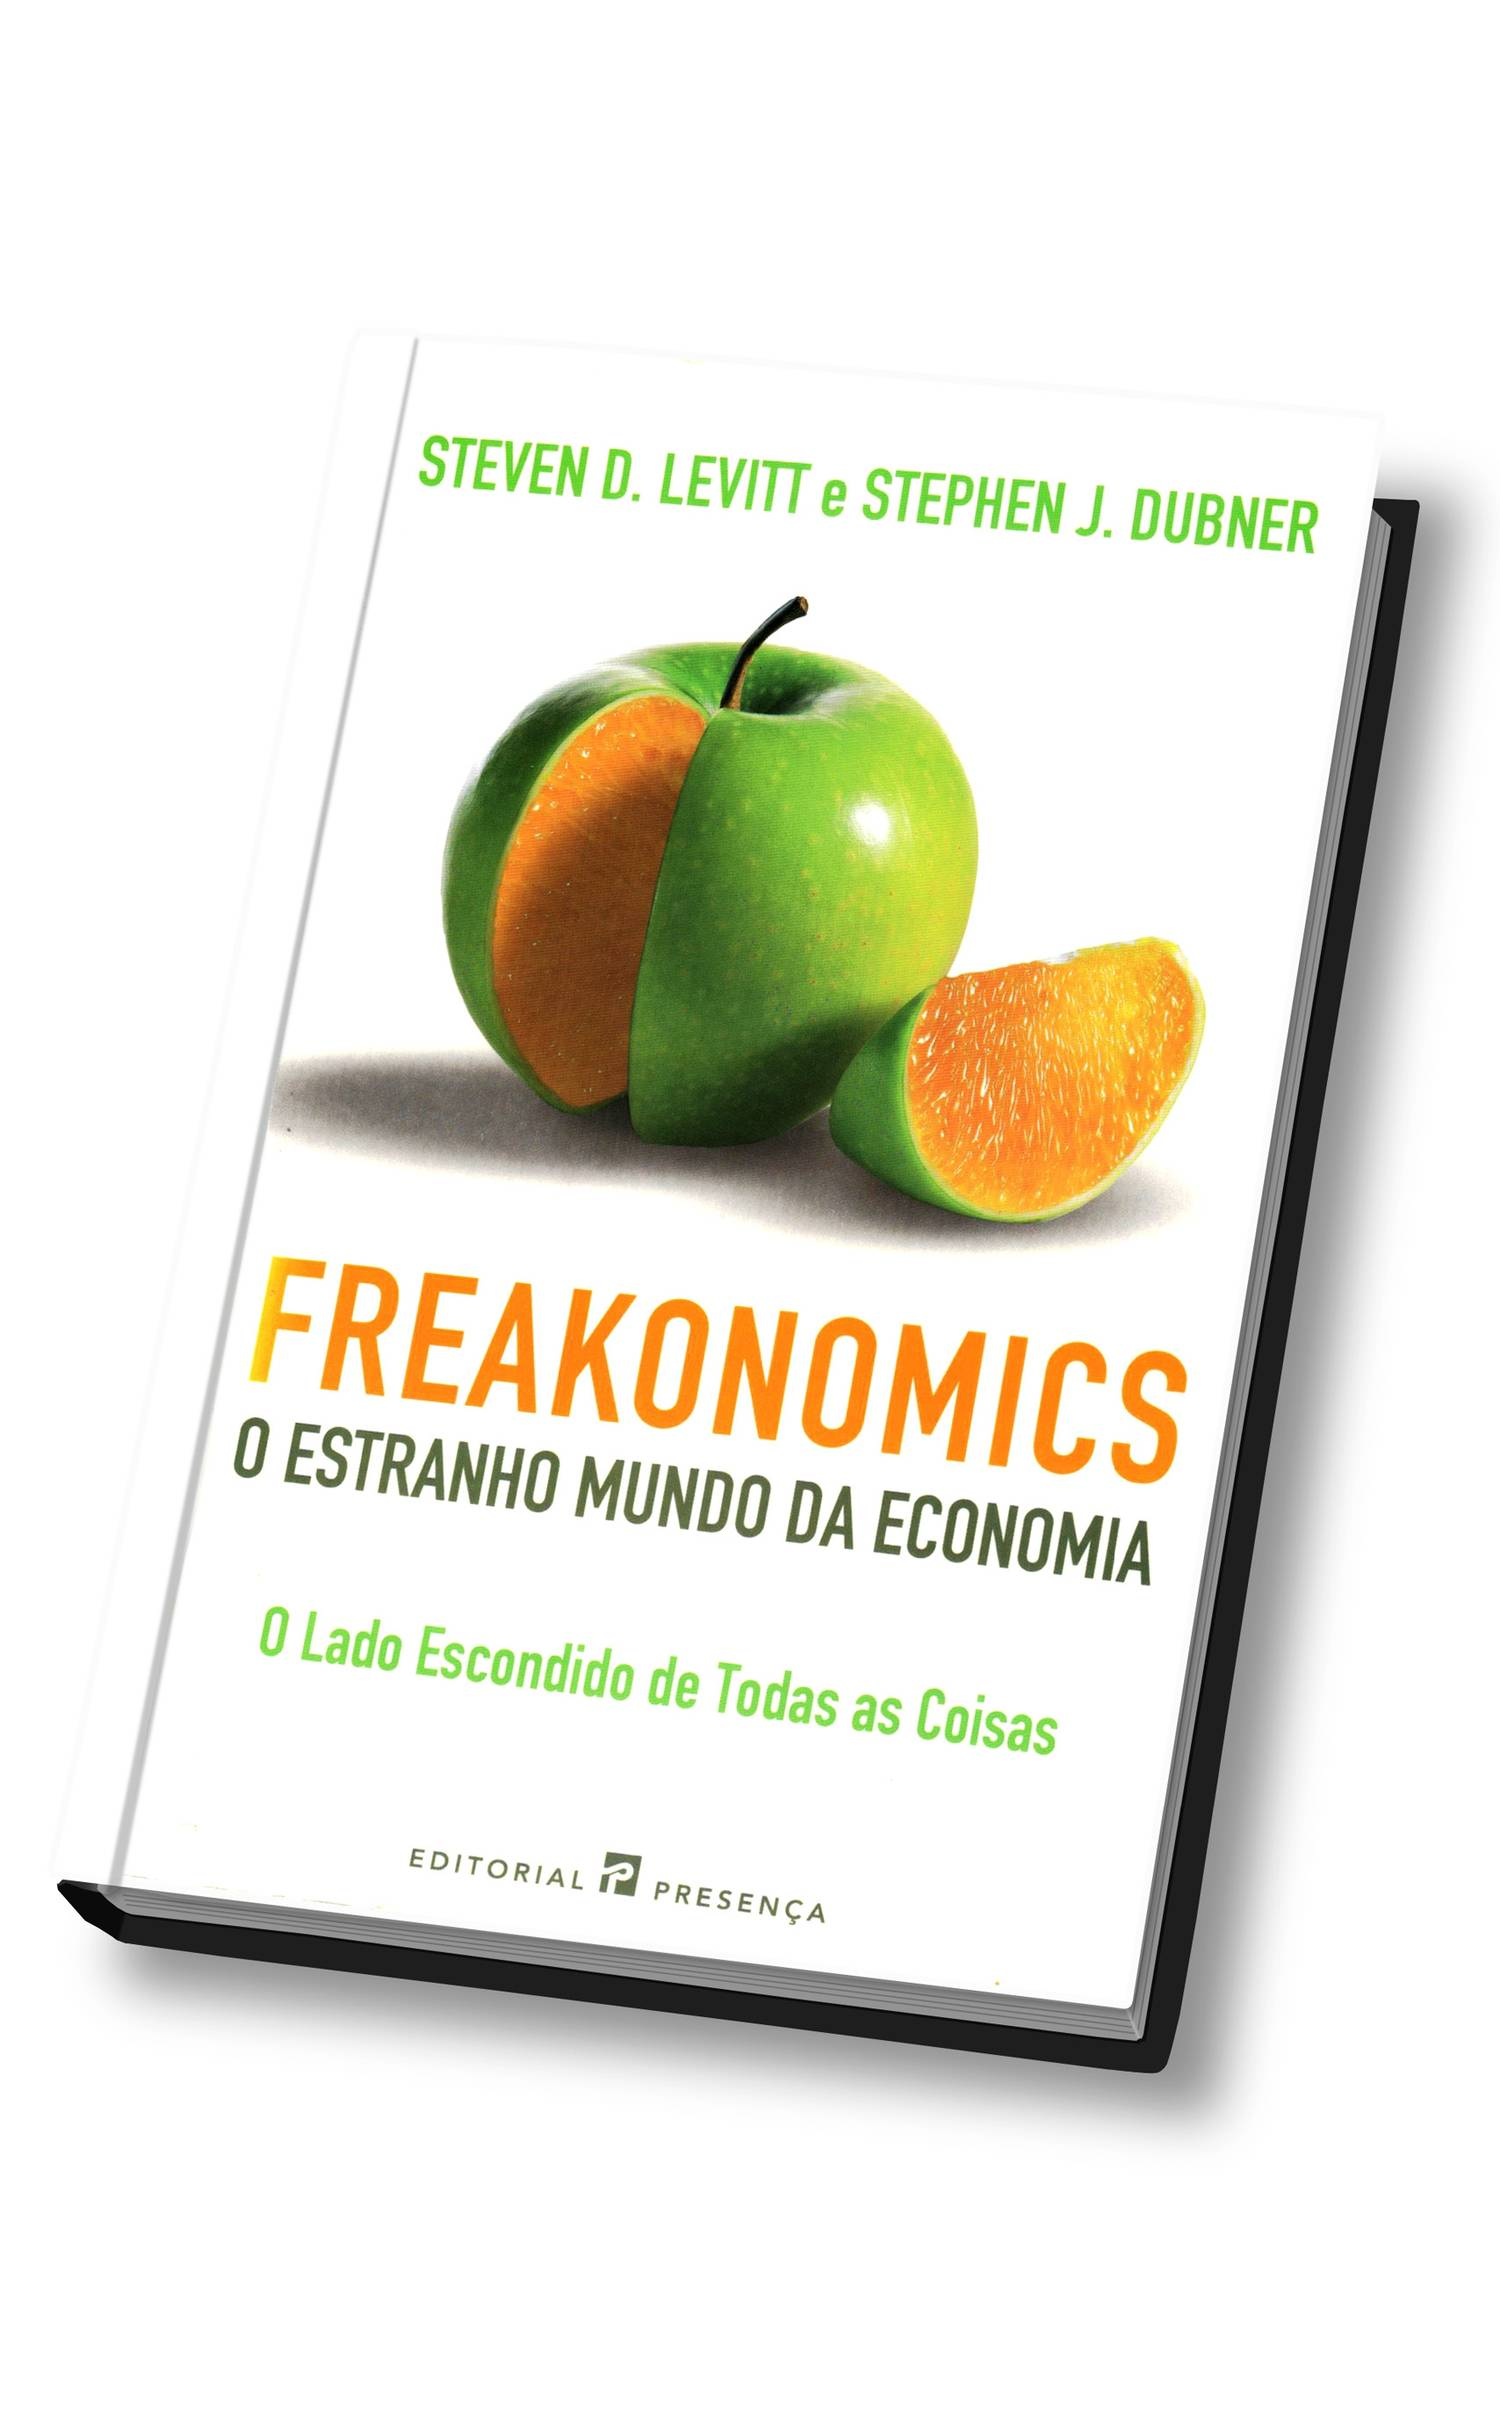 freakonomics summary Freakonomics analyzes incentives: the financial, social, and moral incentives that drive people to lie on their online dating profiles and cheat on standardized tests according to levitt and.